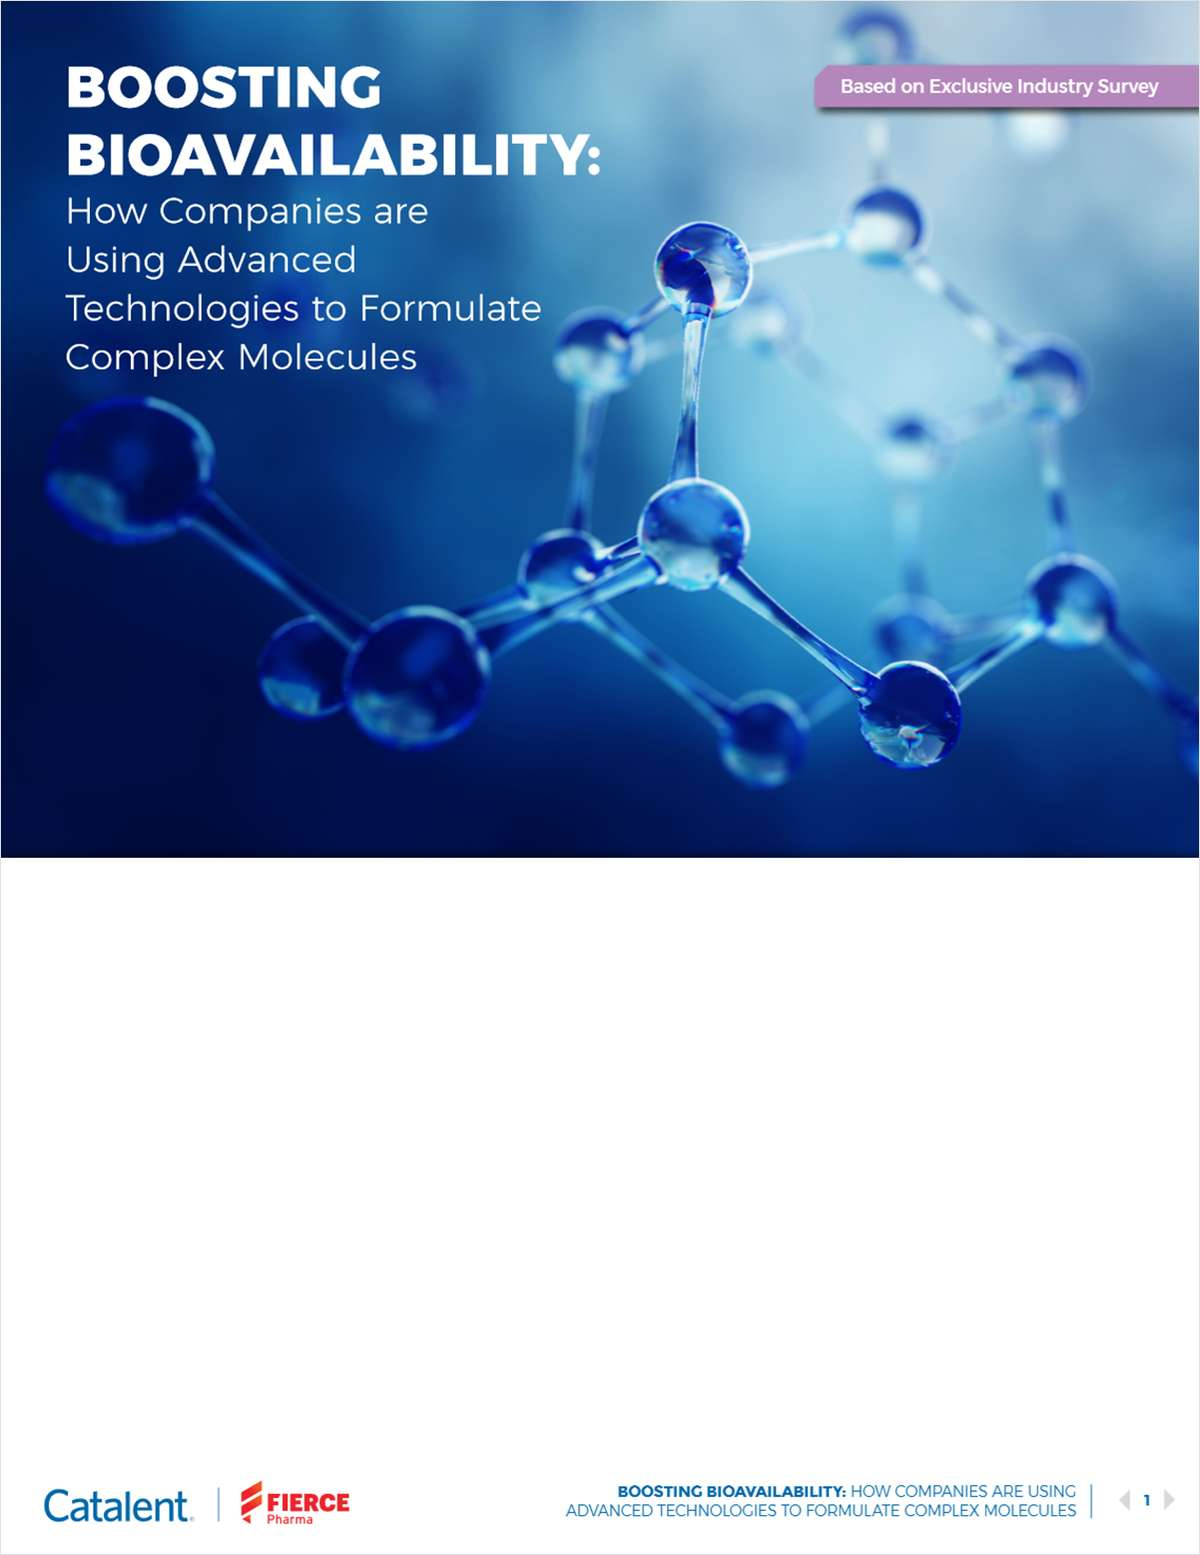 BOOSTING BIOAVAILABILITY: How Companies are Using Advanced Technologies to Formulate Complex Molecules